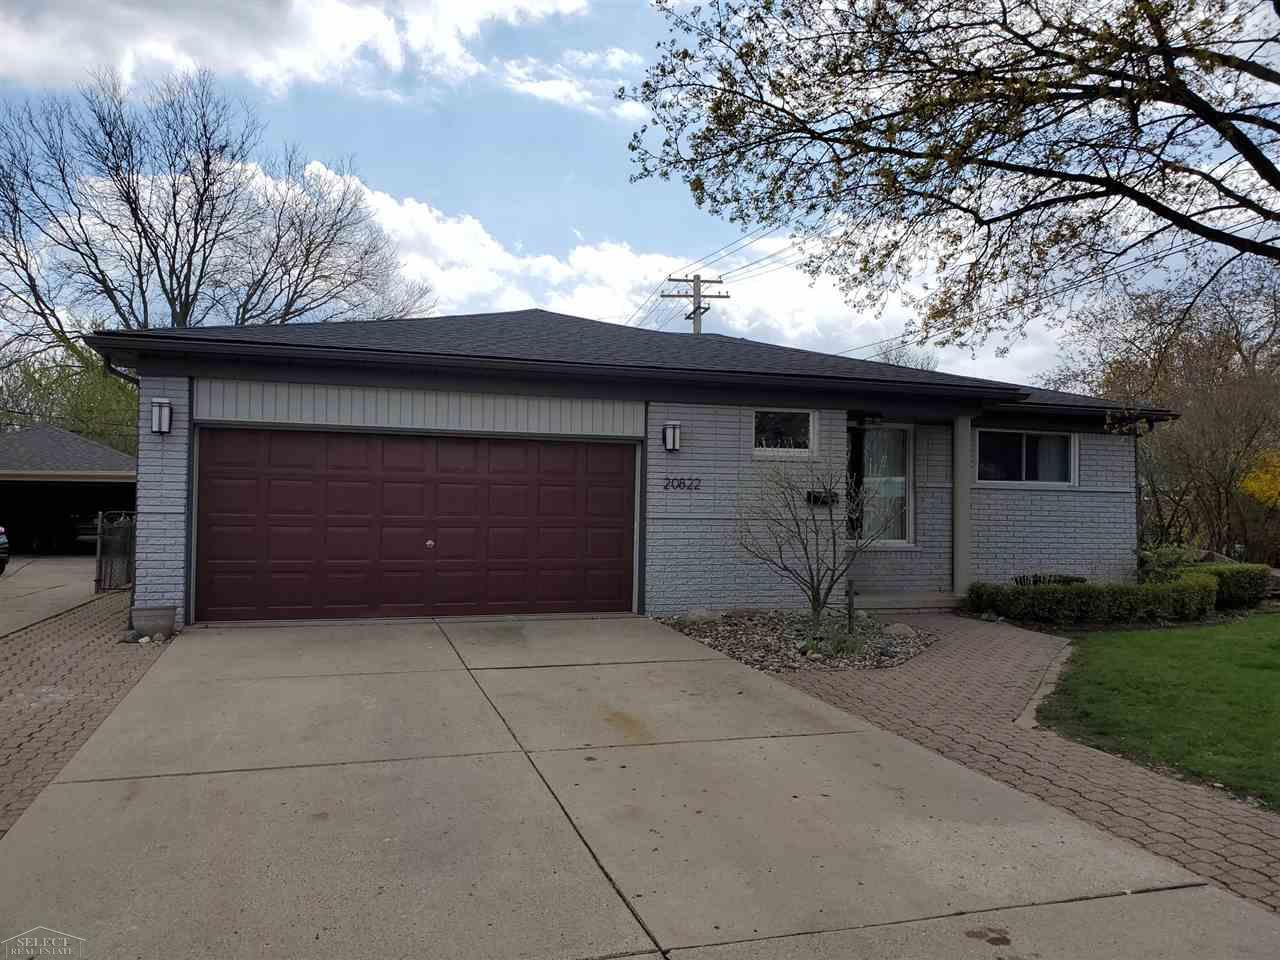 Beautiful Ranch with a large kitchen and dining area great for entertaining guests. With a beautiful back yard with lots of space to barbeque and have fun in the sun. With two bedrooms and one an a half bath you cant go wrong with this beauty.  Won't last long!